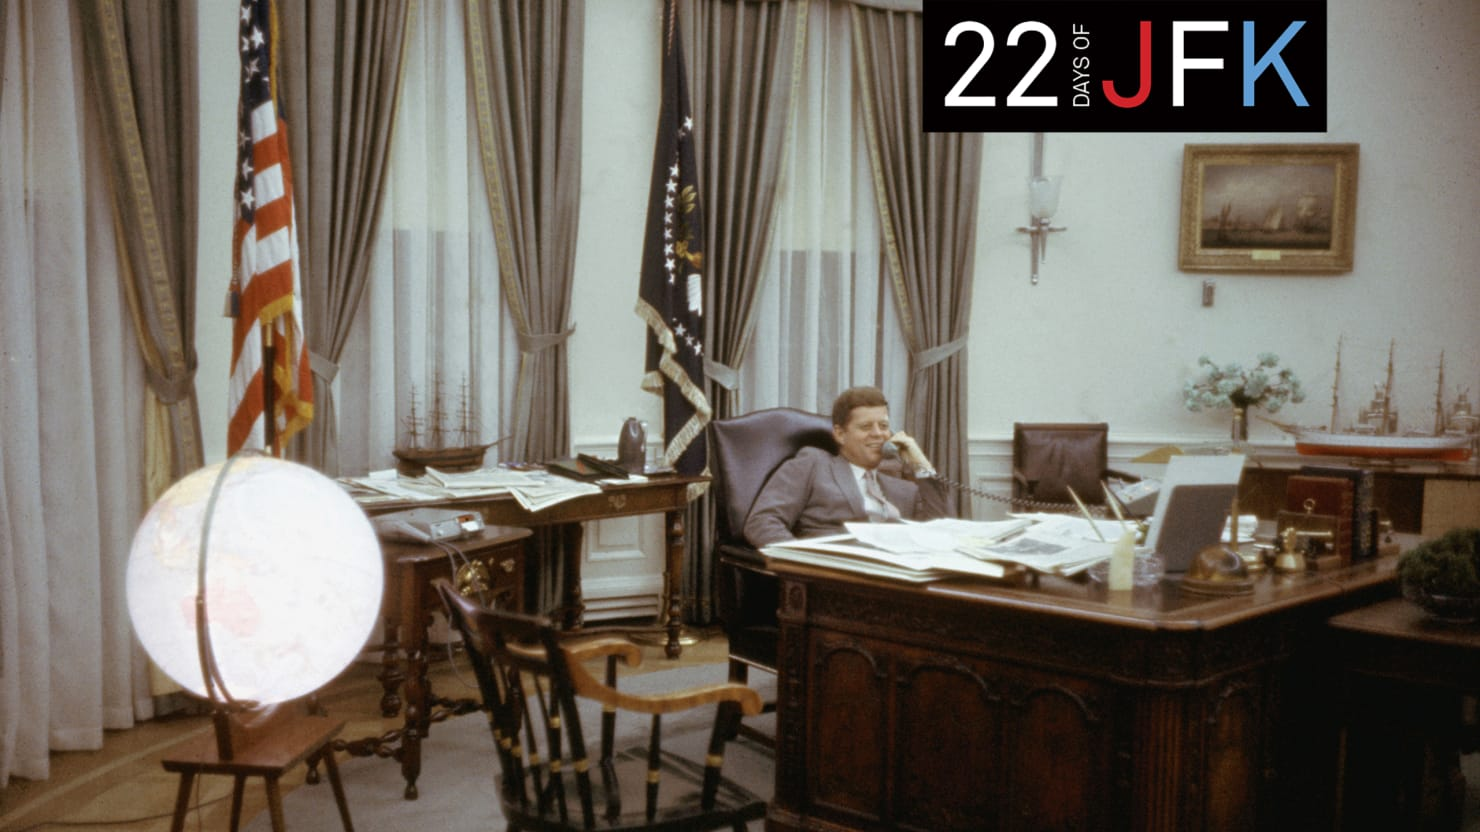 JFKs Favorite Things Inside Our 35th Presidents Oval Office